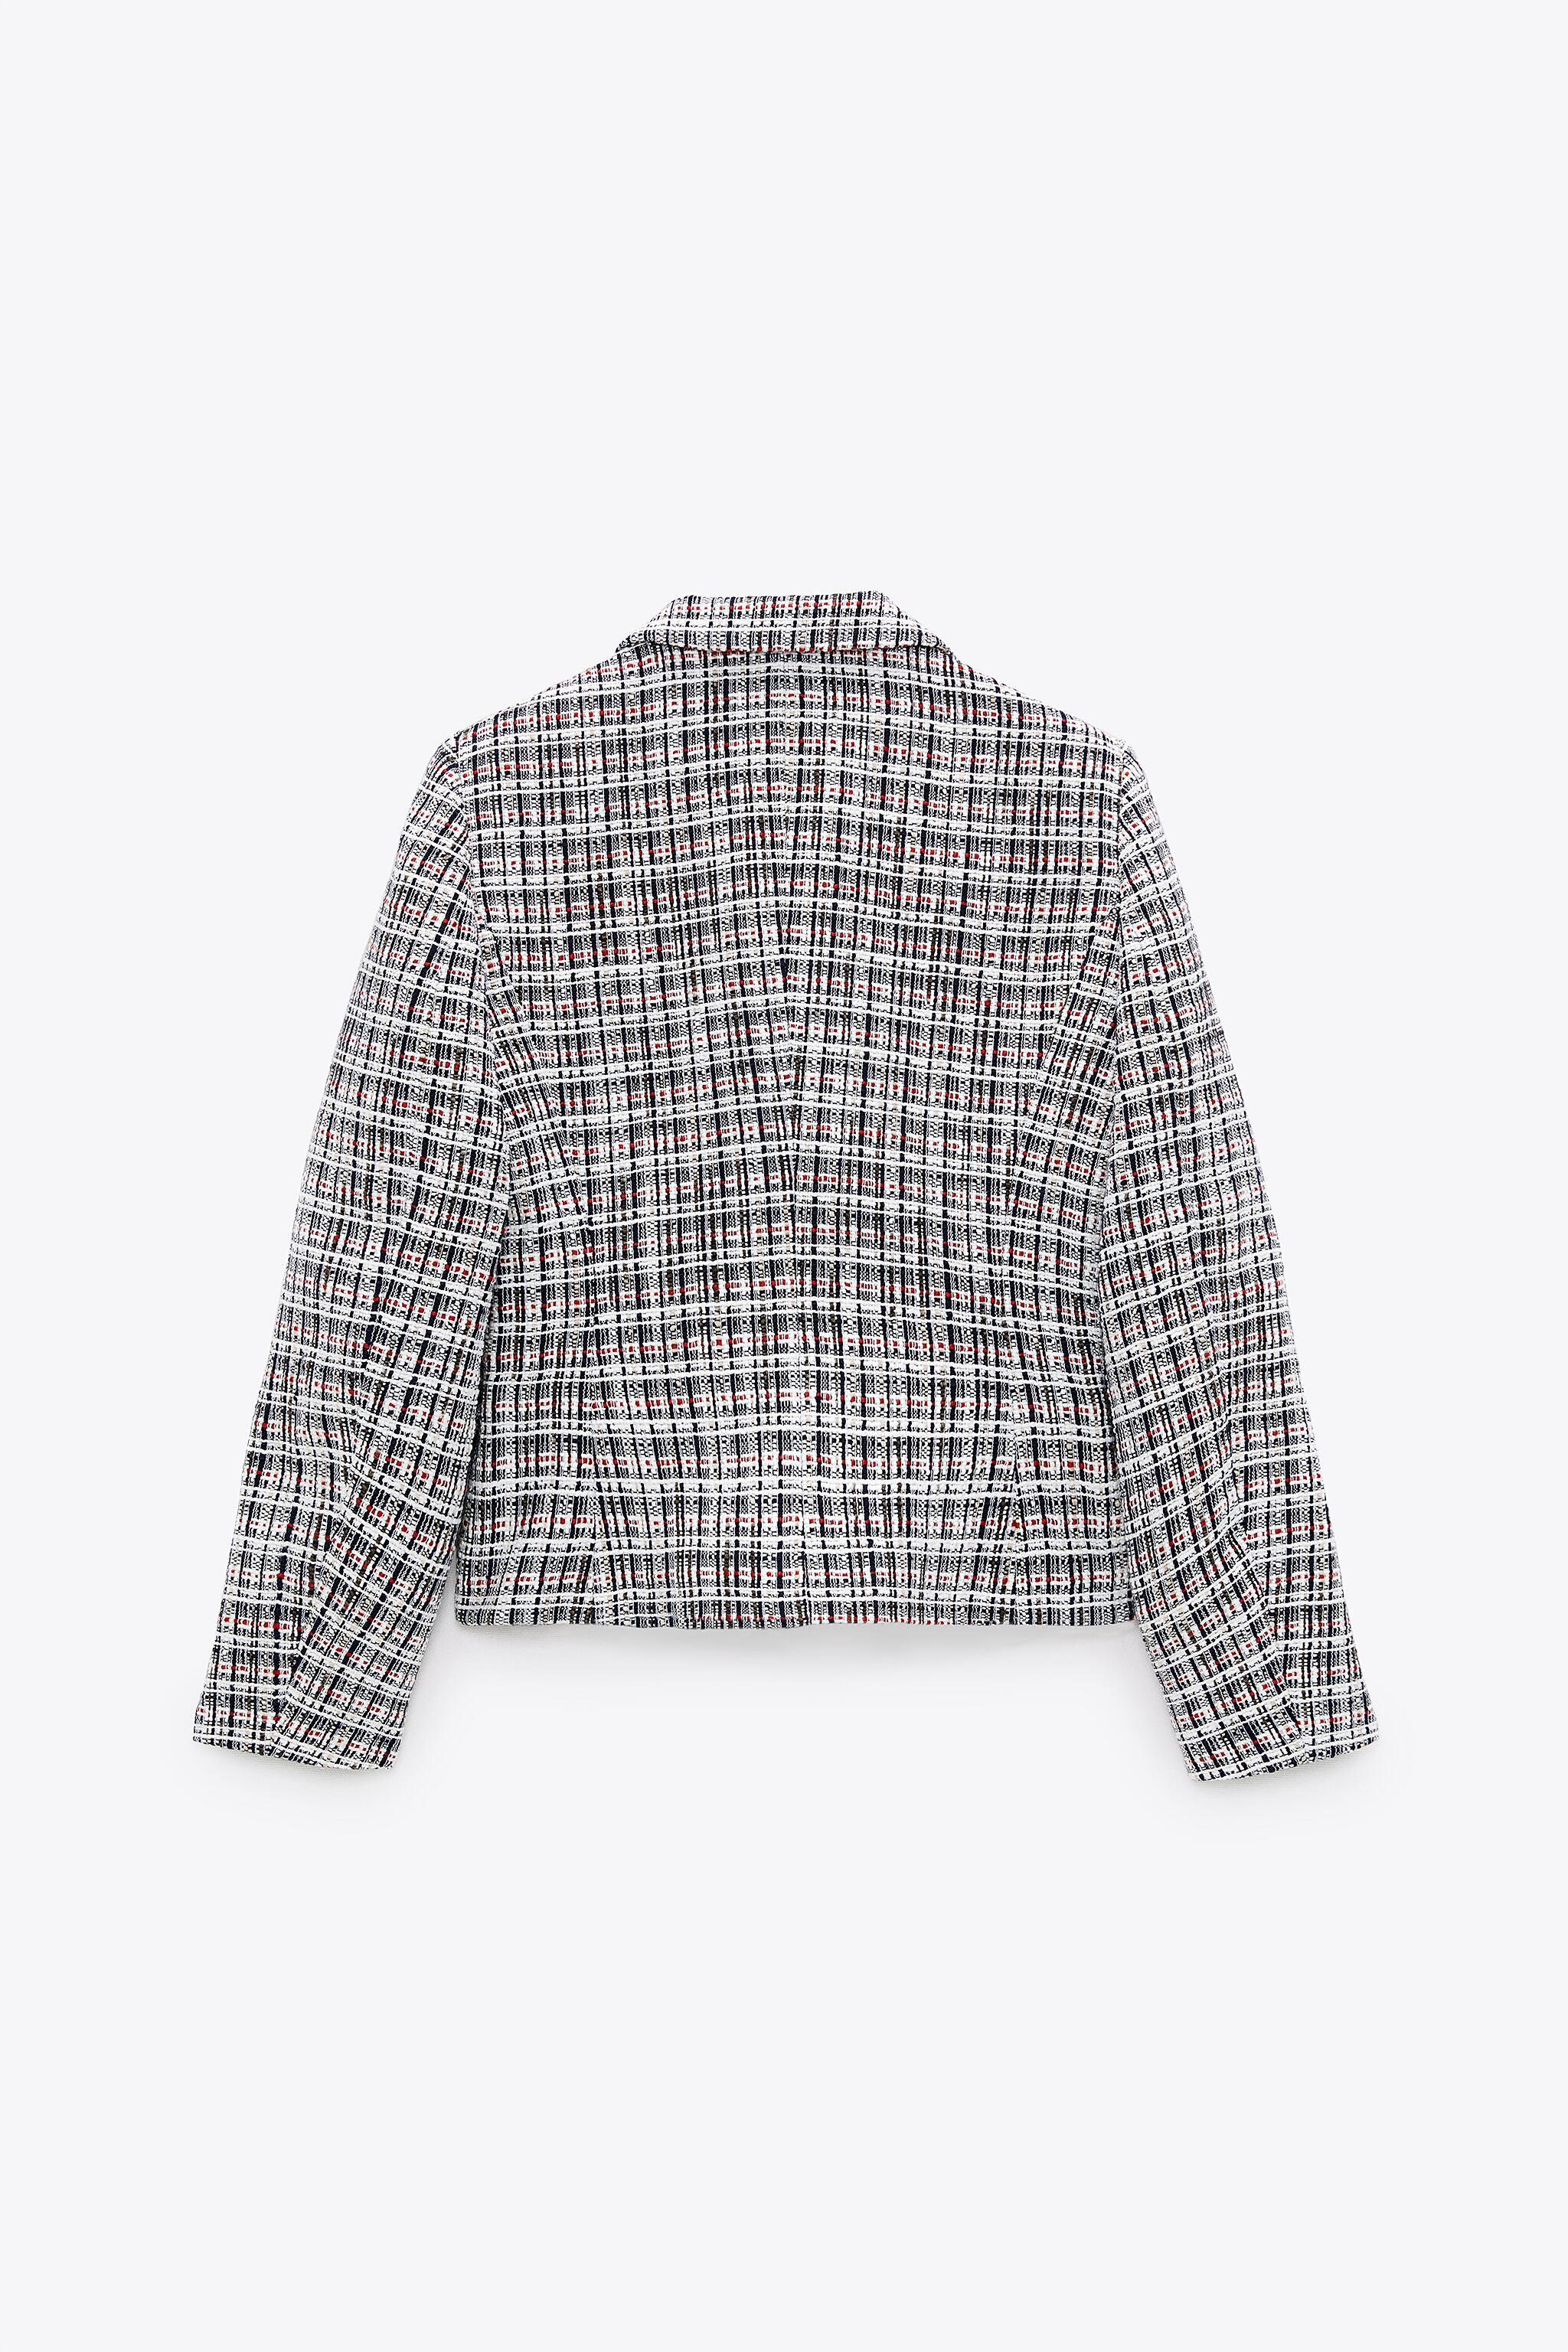 DOUBLE BREASTED TEXTURED WEAVE JACKET 9